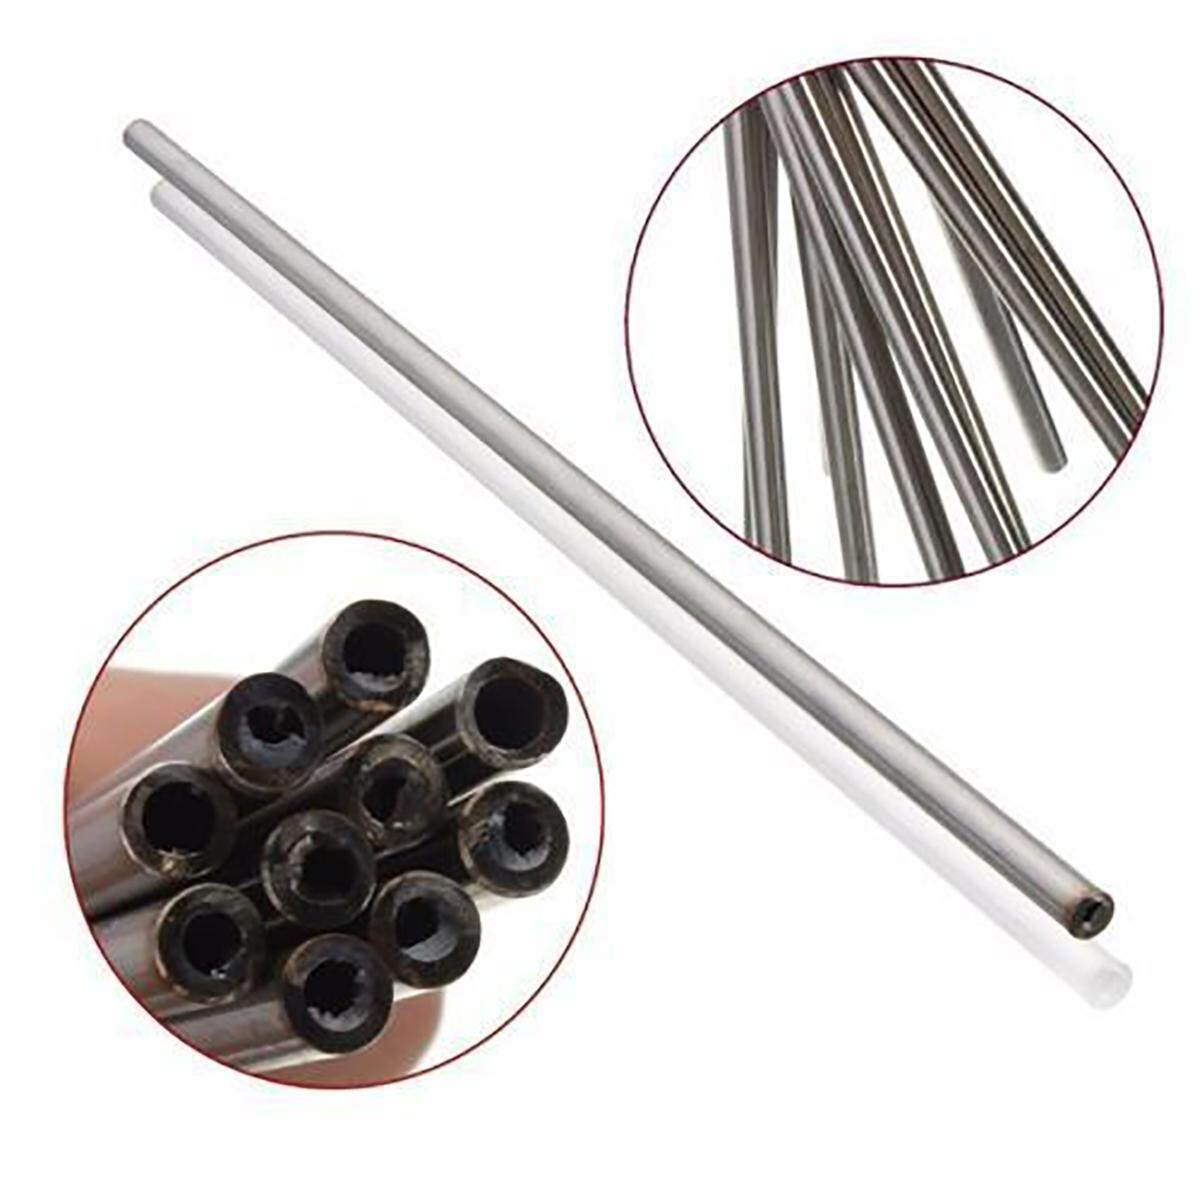 304 Stainless Steel Capillary Tube OD 4mm x 3mm ID Length 250mm Metal Tool GR